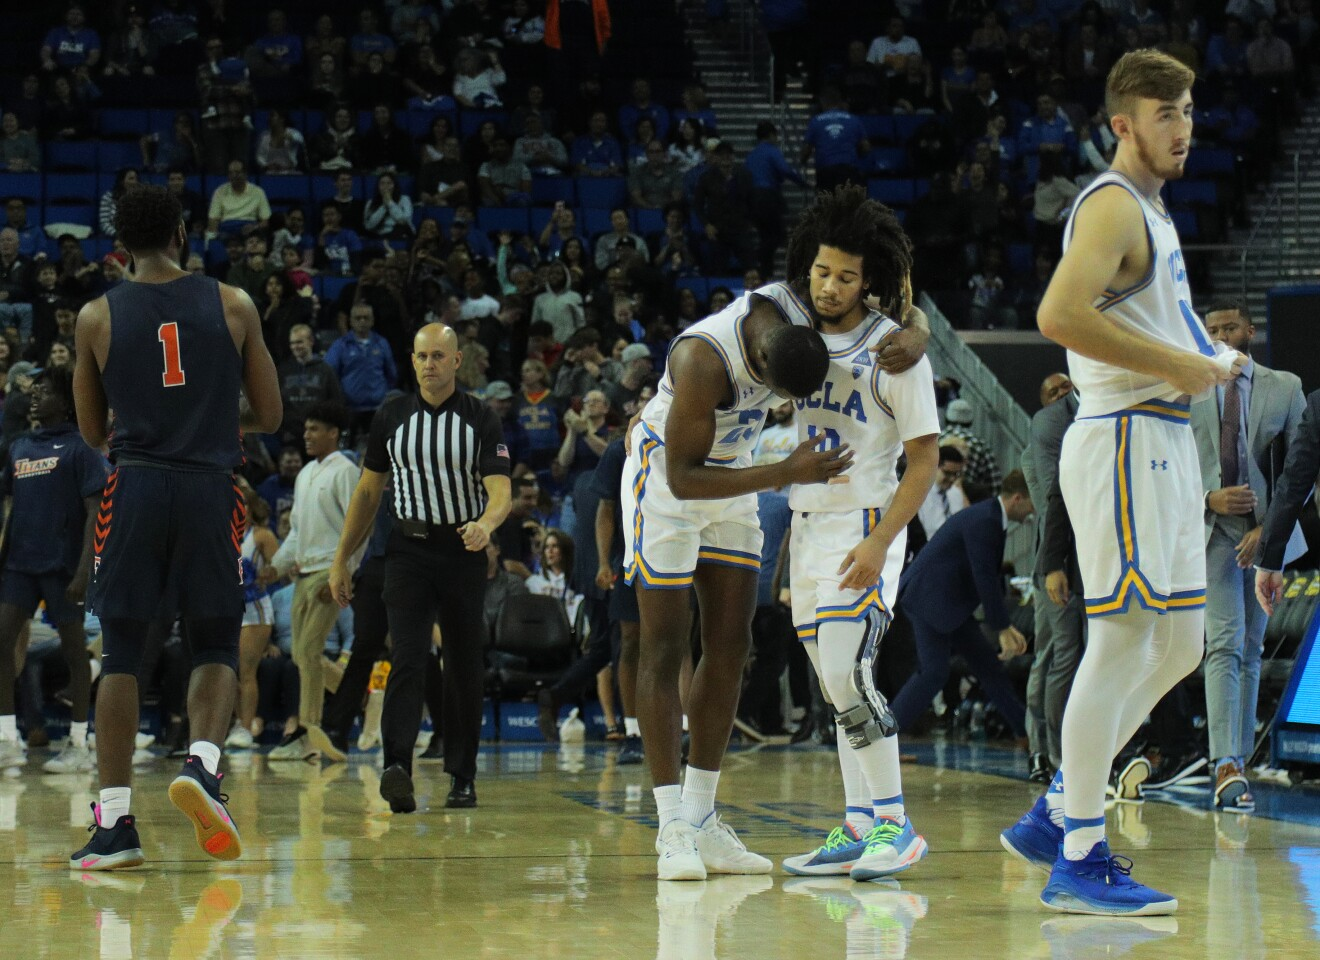 WESTWOOD, CA - DECEMBER 28, 2019: UCLA Bruins guard Tyger Campbell (10) consoles UCLA Bruins guard Prince Ali (23) after Ali turned the ball her in the final seconds of the Bruins 77-74 loss to Cal State Fullerton at Pauley Pavilion on December 28, 2019 in Westwood, California.(Gina Ferazzi/Los AngelesTimes)